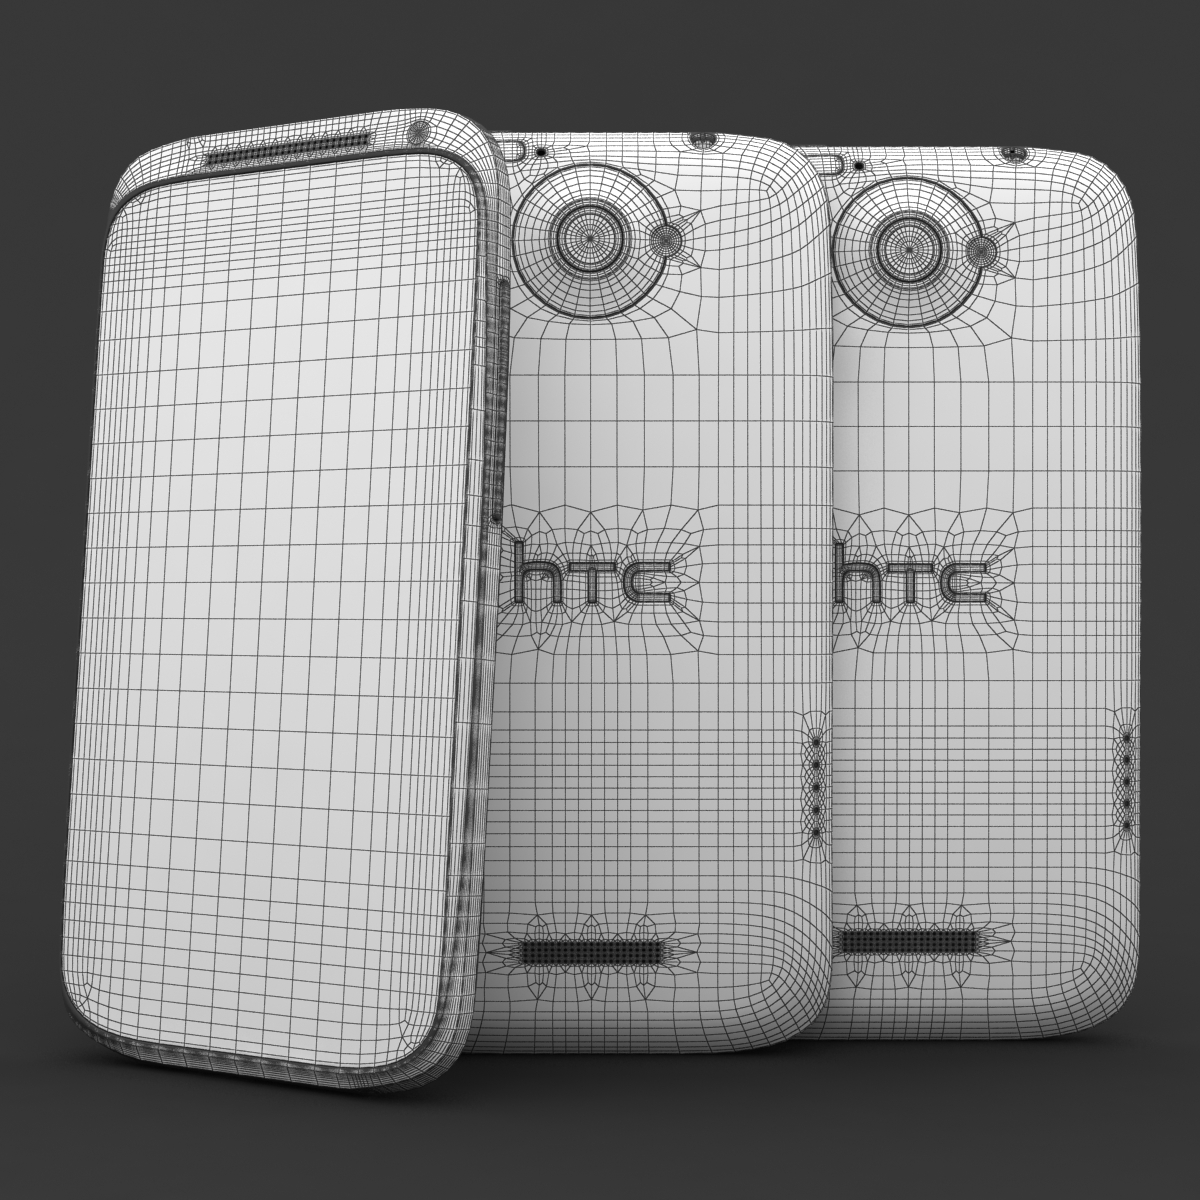 htc one x+ black and white 3d model 3ds max fbx c4d lwo obj 151434